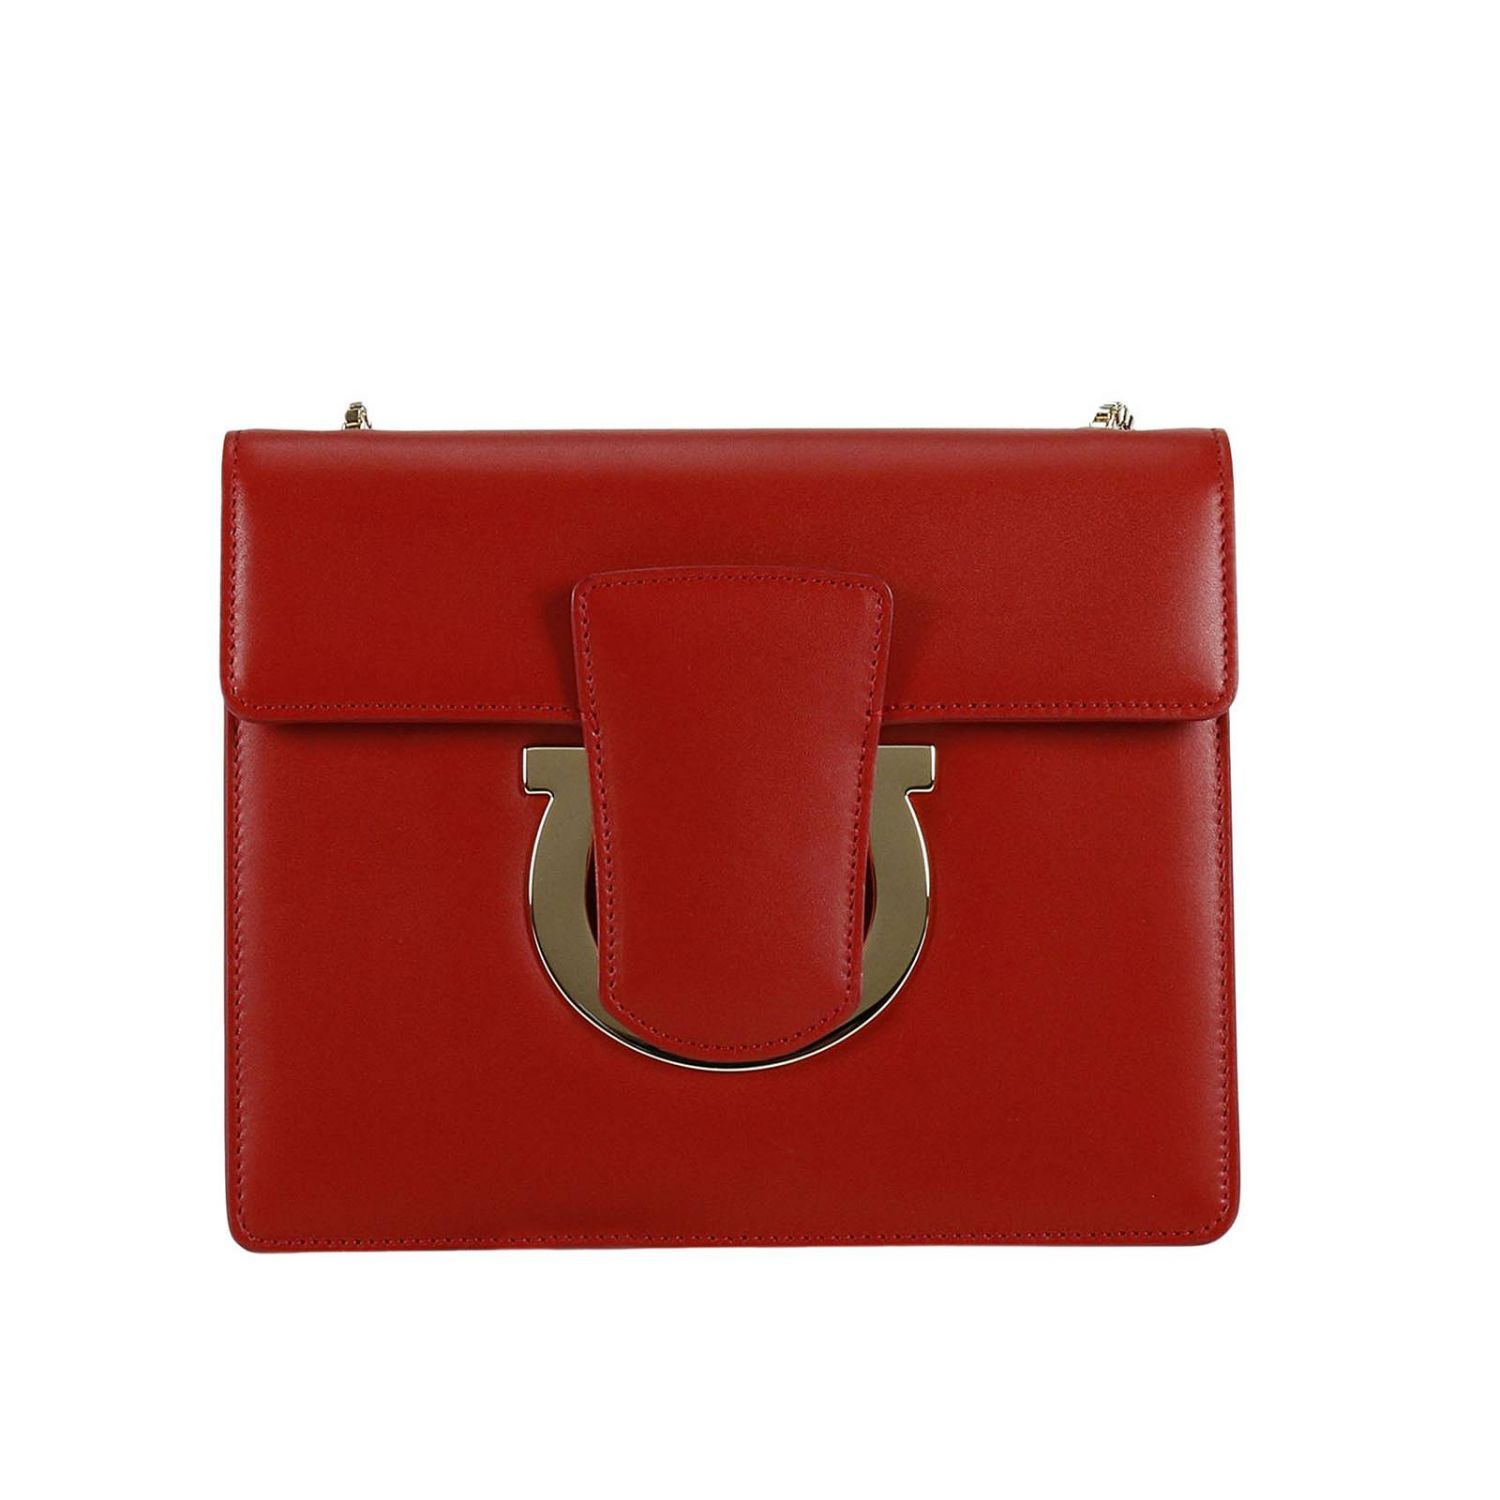 Mini Bag Shoulder Bag Women Salvatore Ferragamo